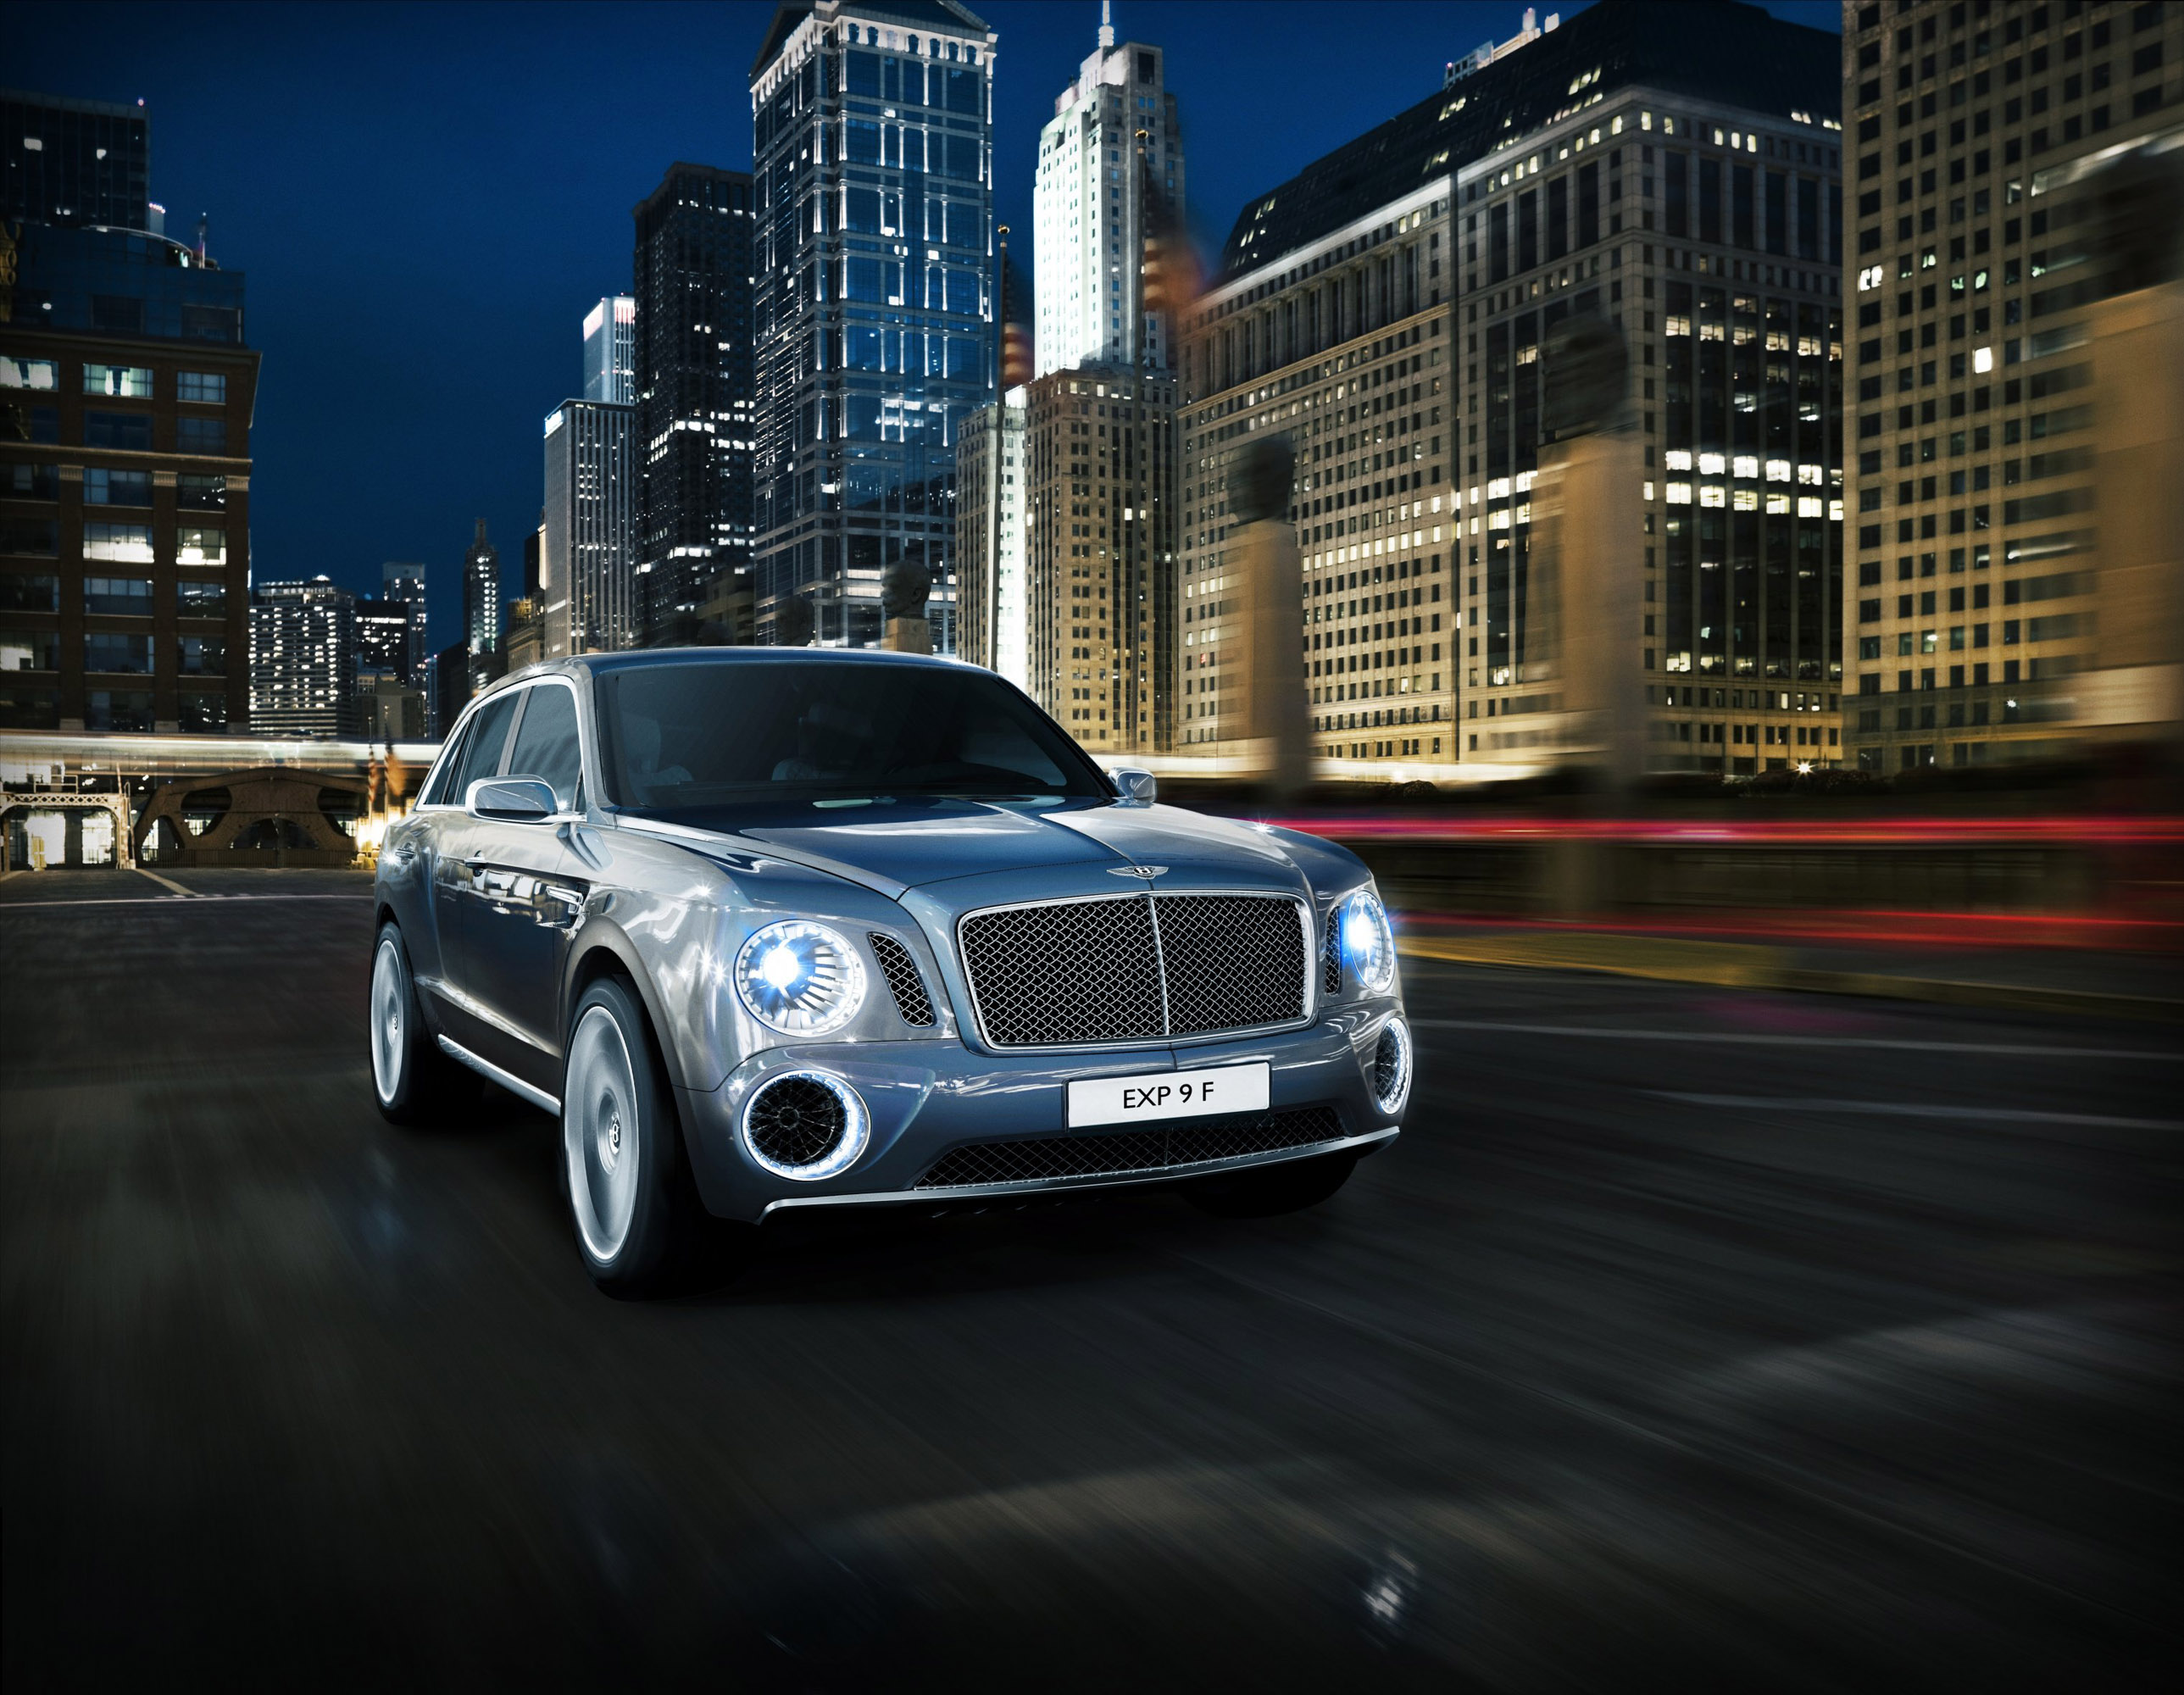 gtc articles price continental suv com photos makes bentley bestcarmag informations